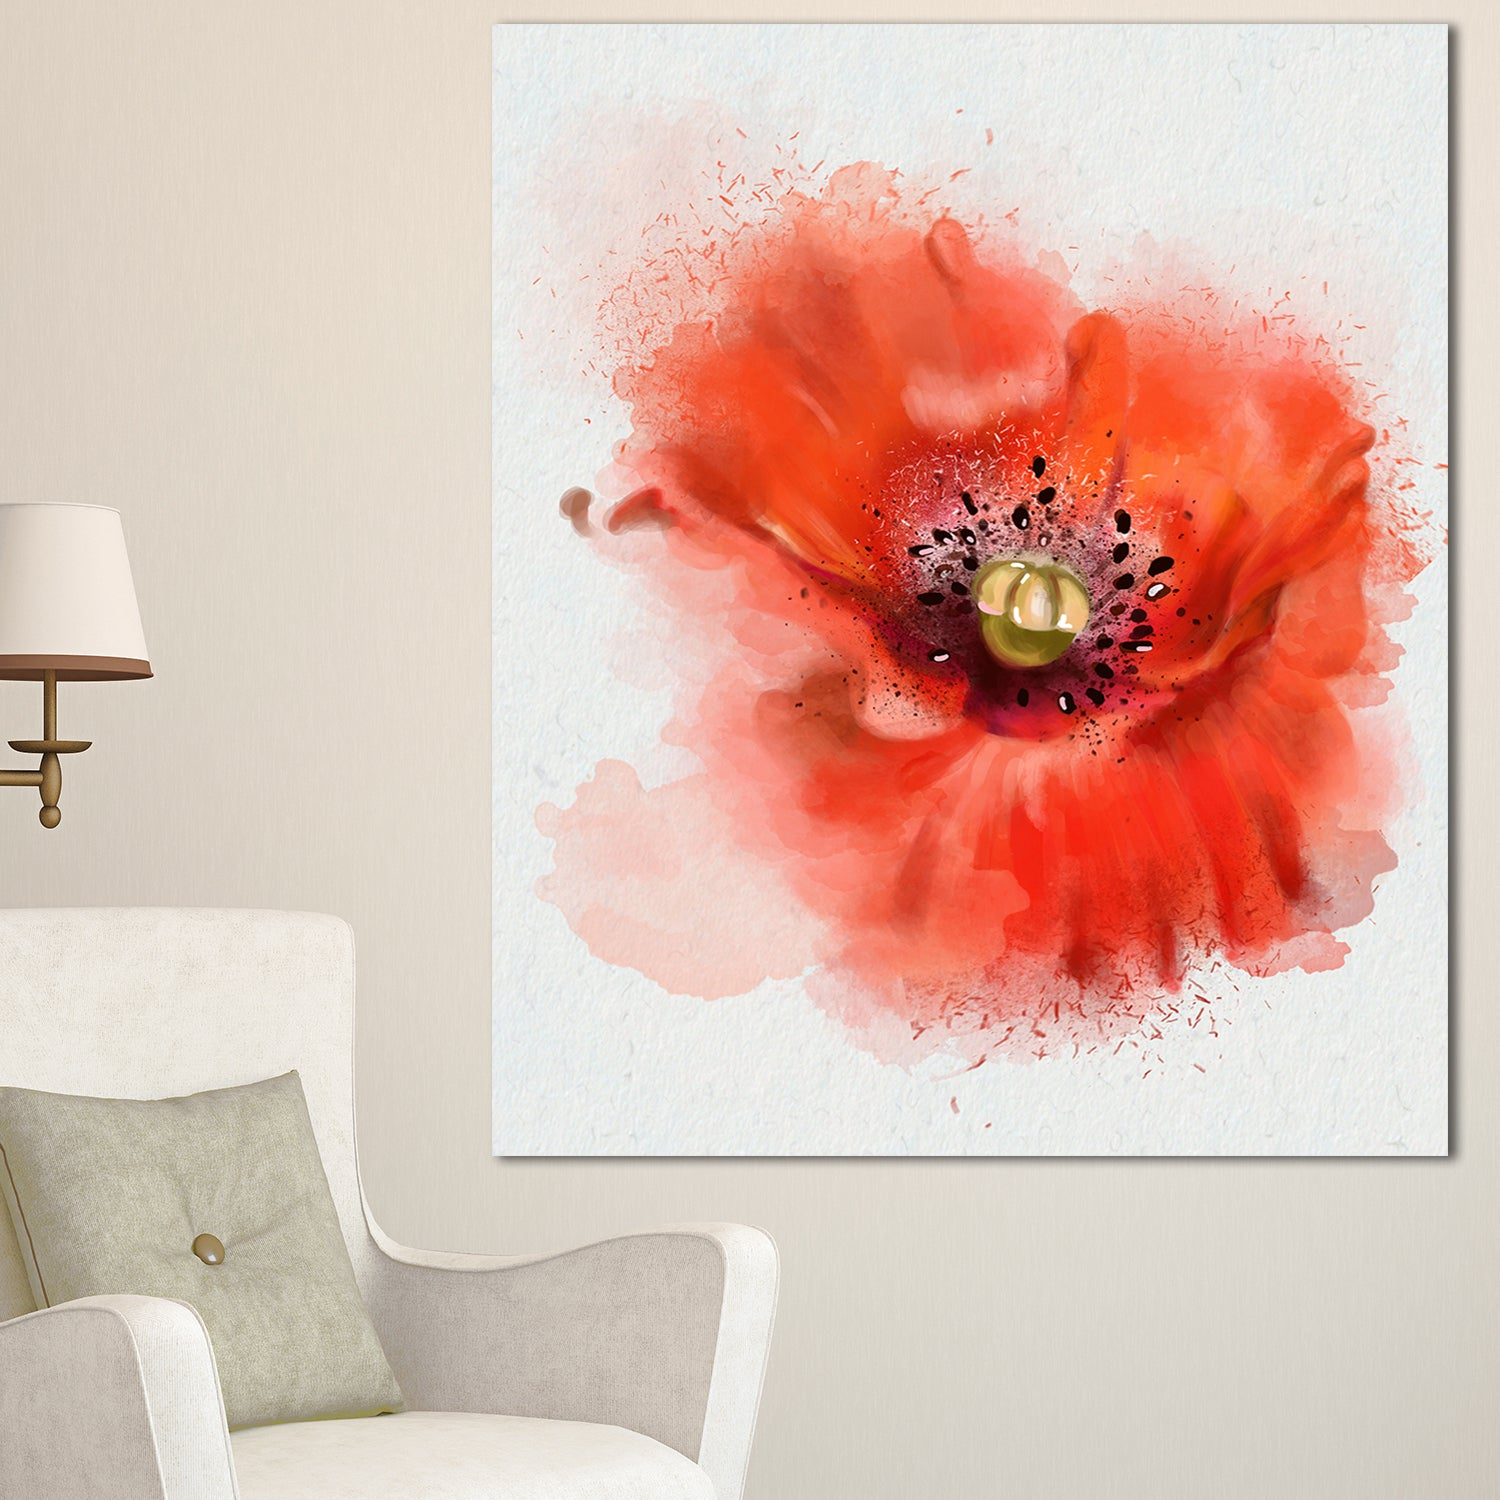 Designart Stylish Red Watercolor Poppy Flower Floral Canvas